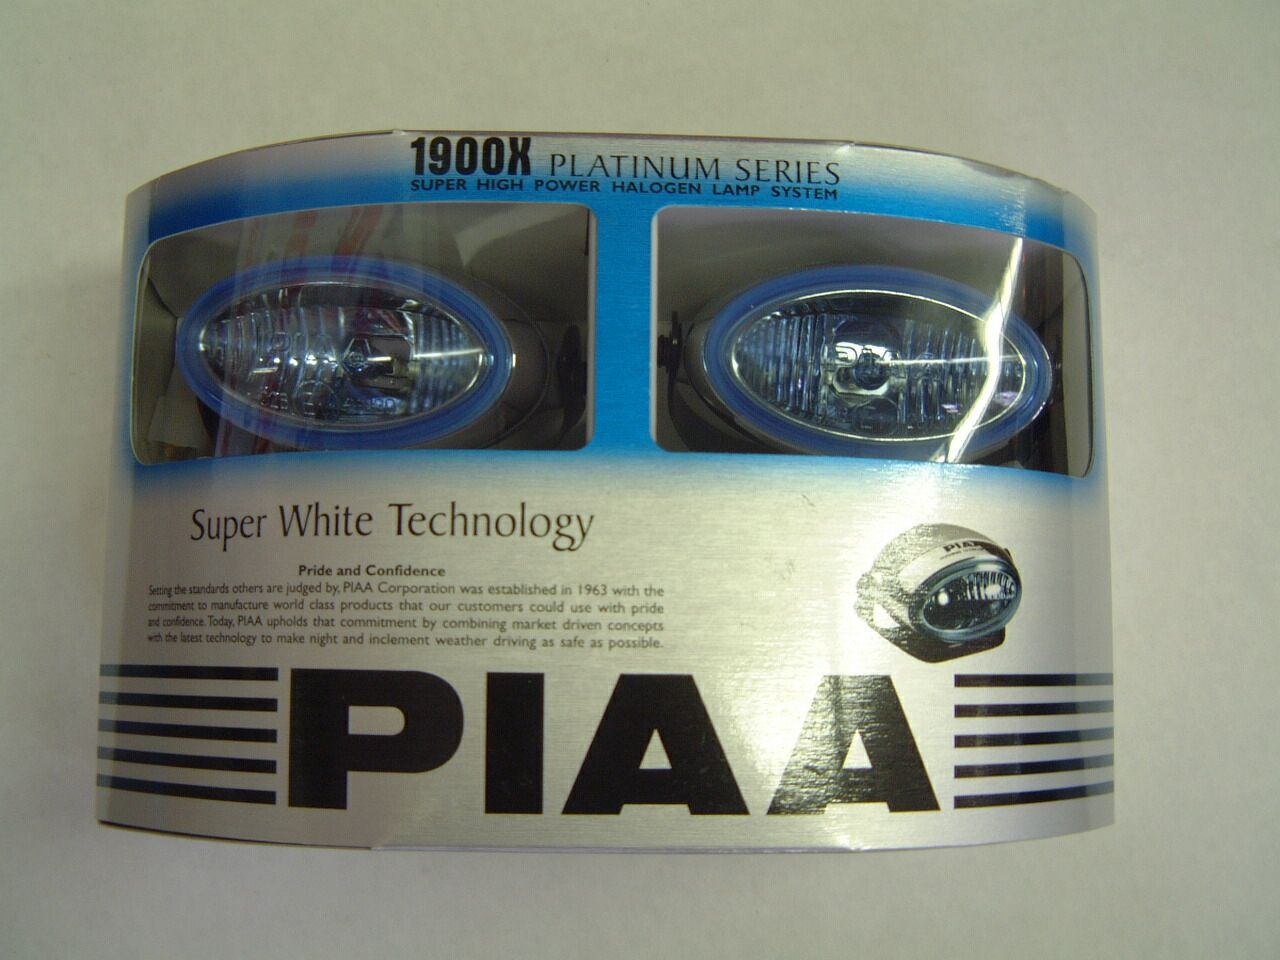 Piaalights Universal Fog Light Wiring Harness Ebay Chrome Plated Aluminum Trim Ring Glass Lens And Msr Bulb Type 12v H3 55 Watt 85 Xtra Super White Kit Includes Two Lamps